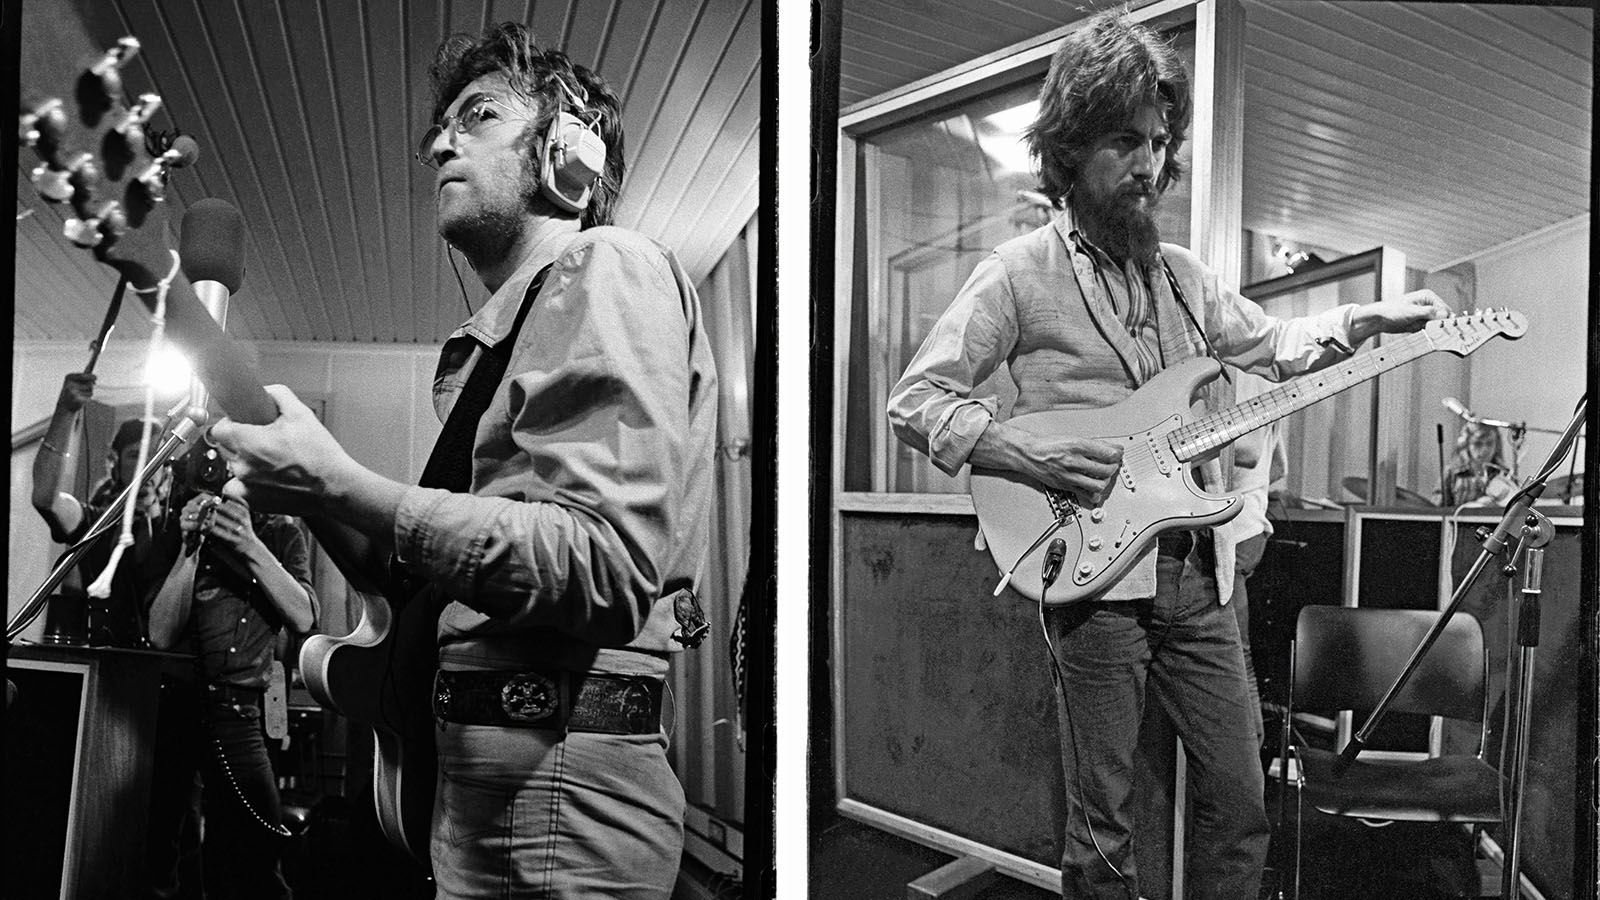 'Imagine' This: How John Lennon and George Harrison Teamed Up to Record a Classic Album in 1971